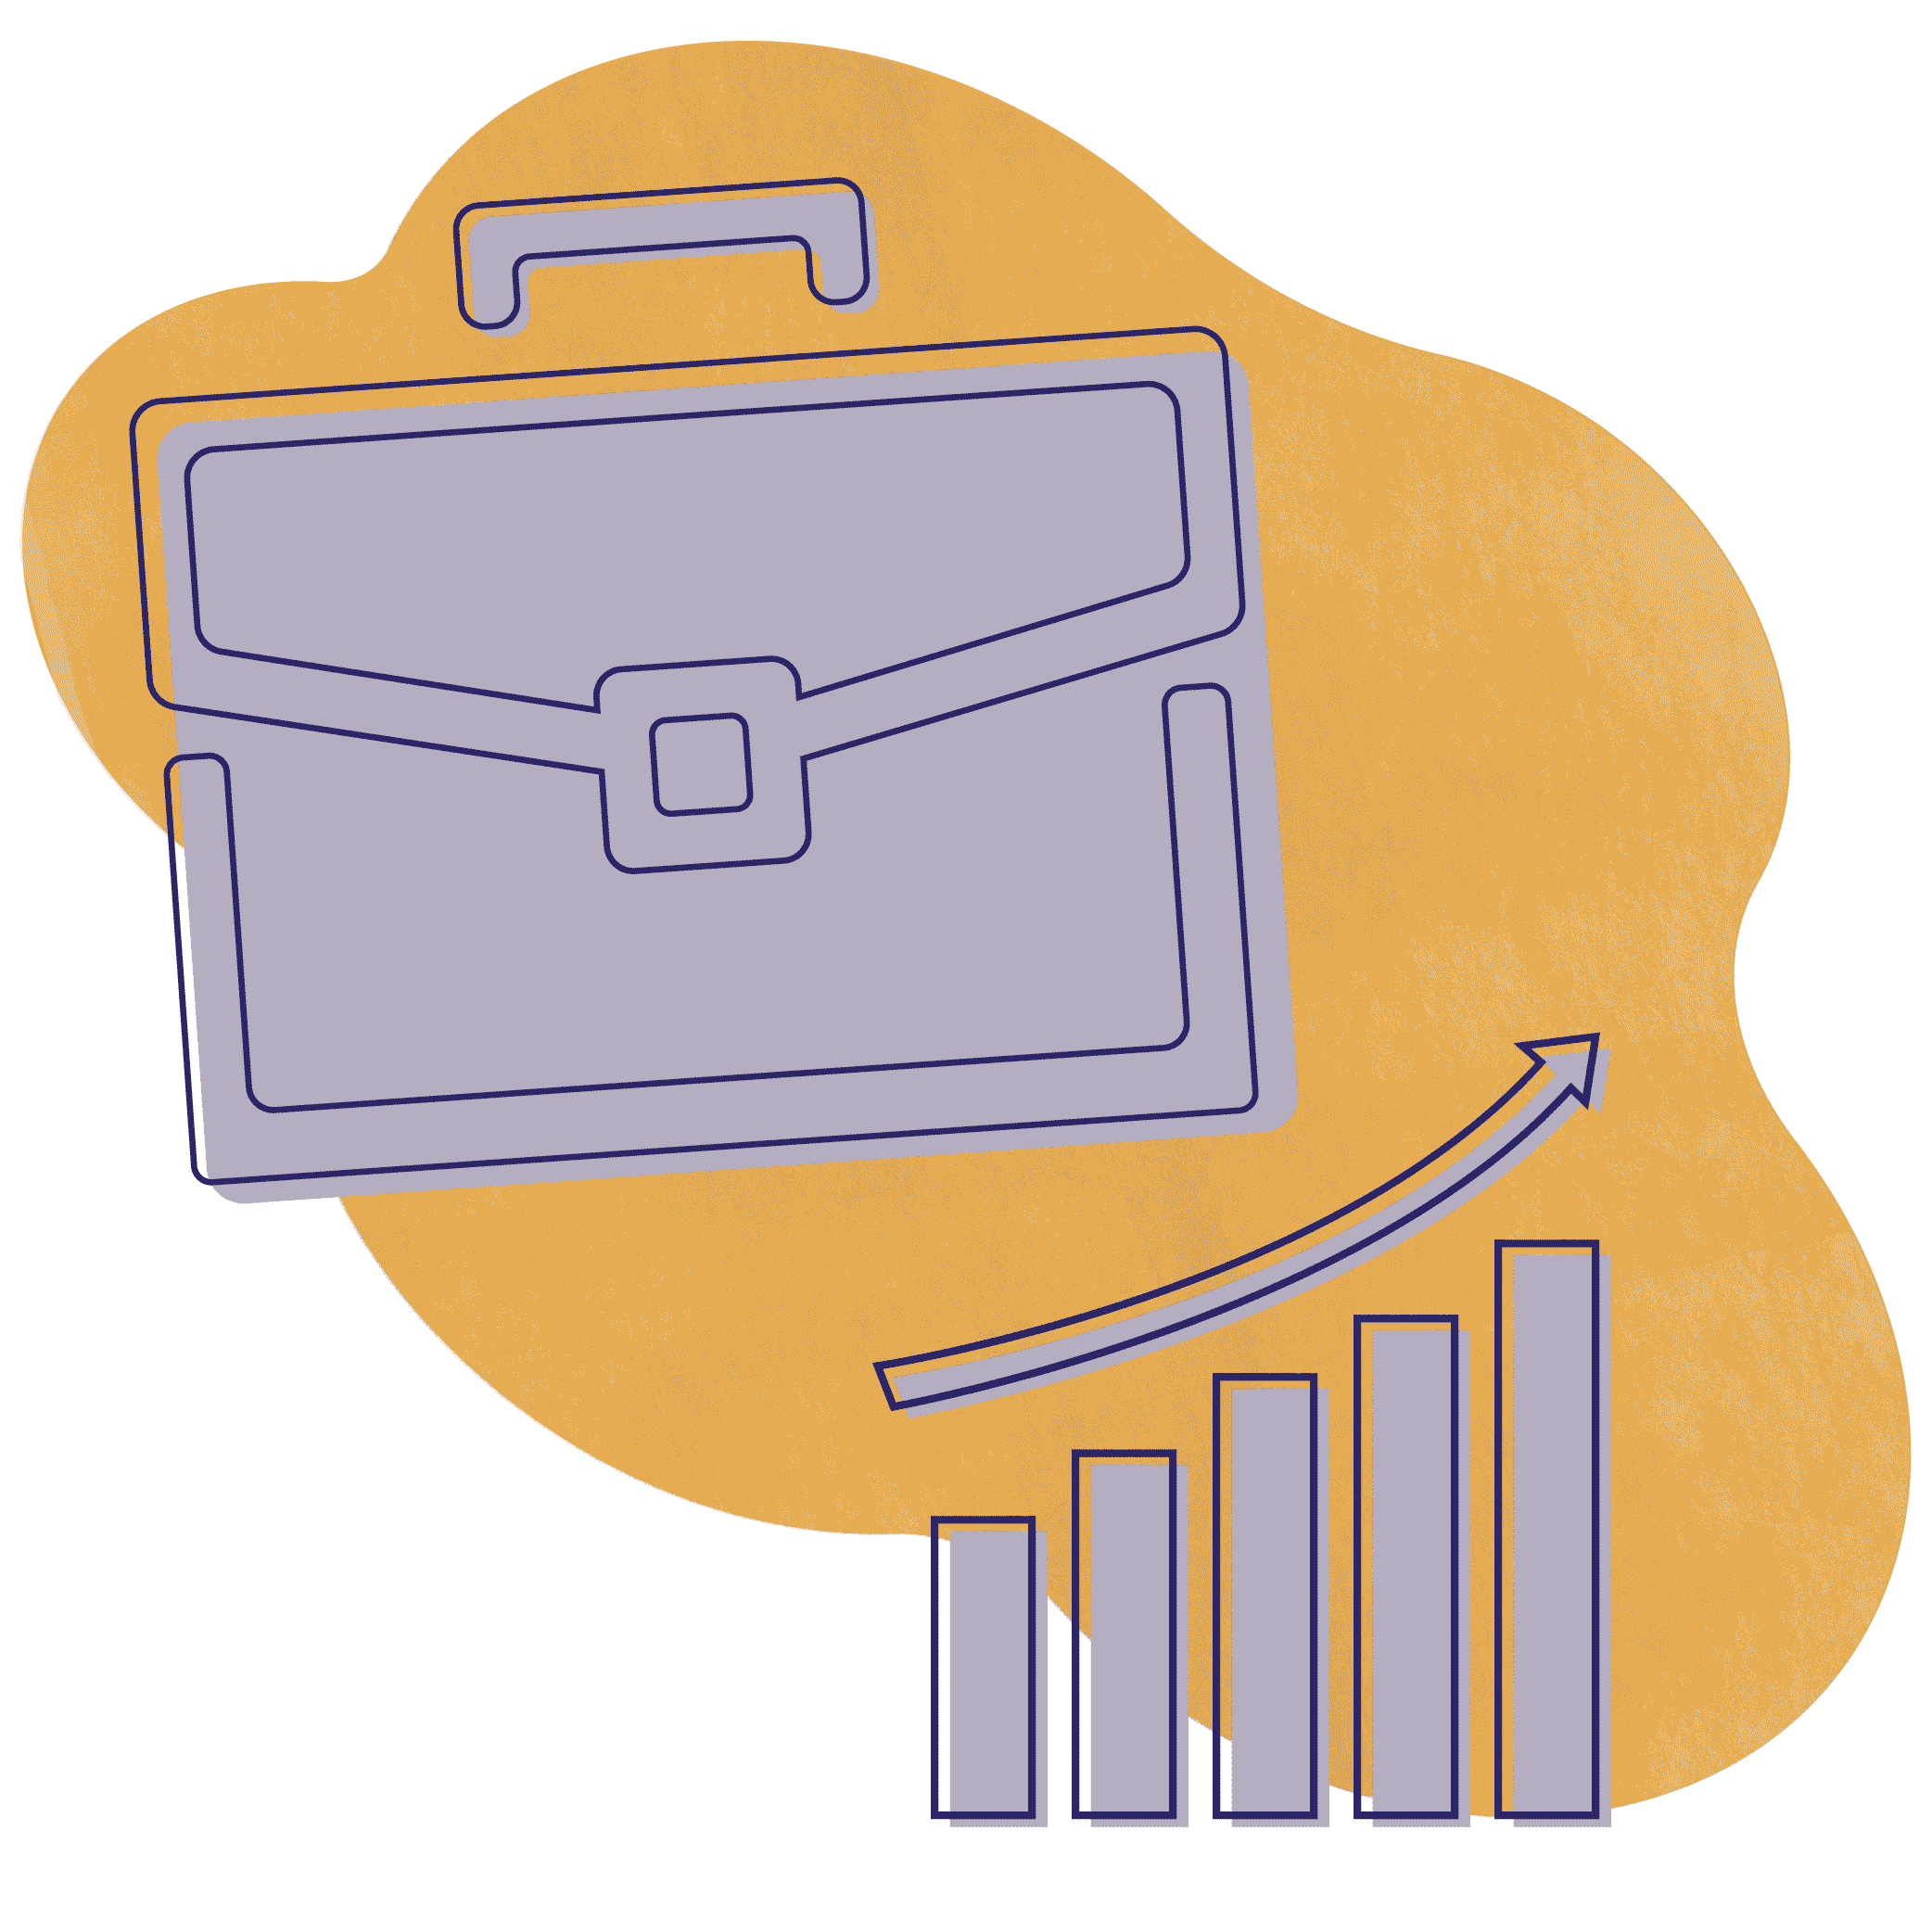 An illustration of business people showing a purple briefcase and a purple bar chart over a gold textured shape.